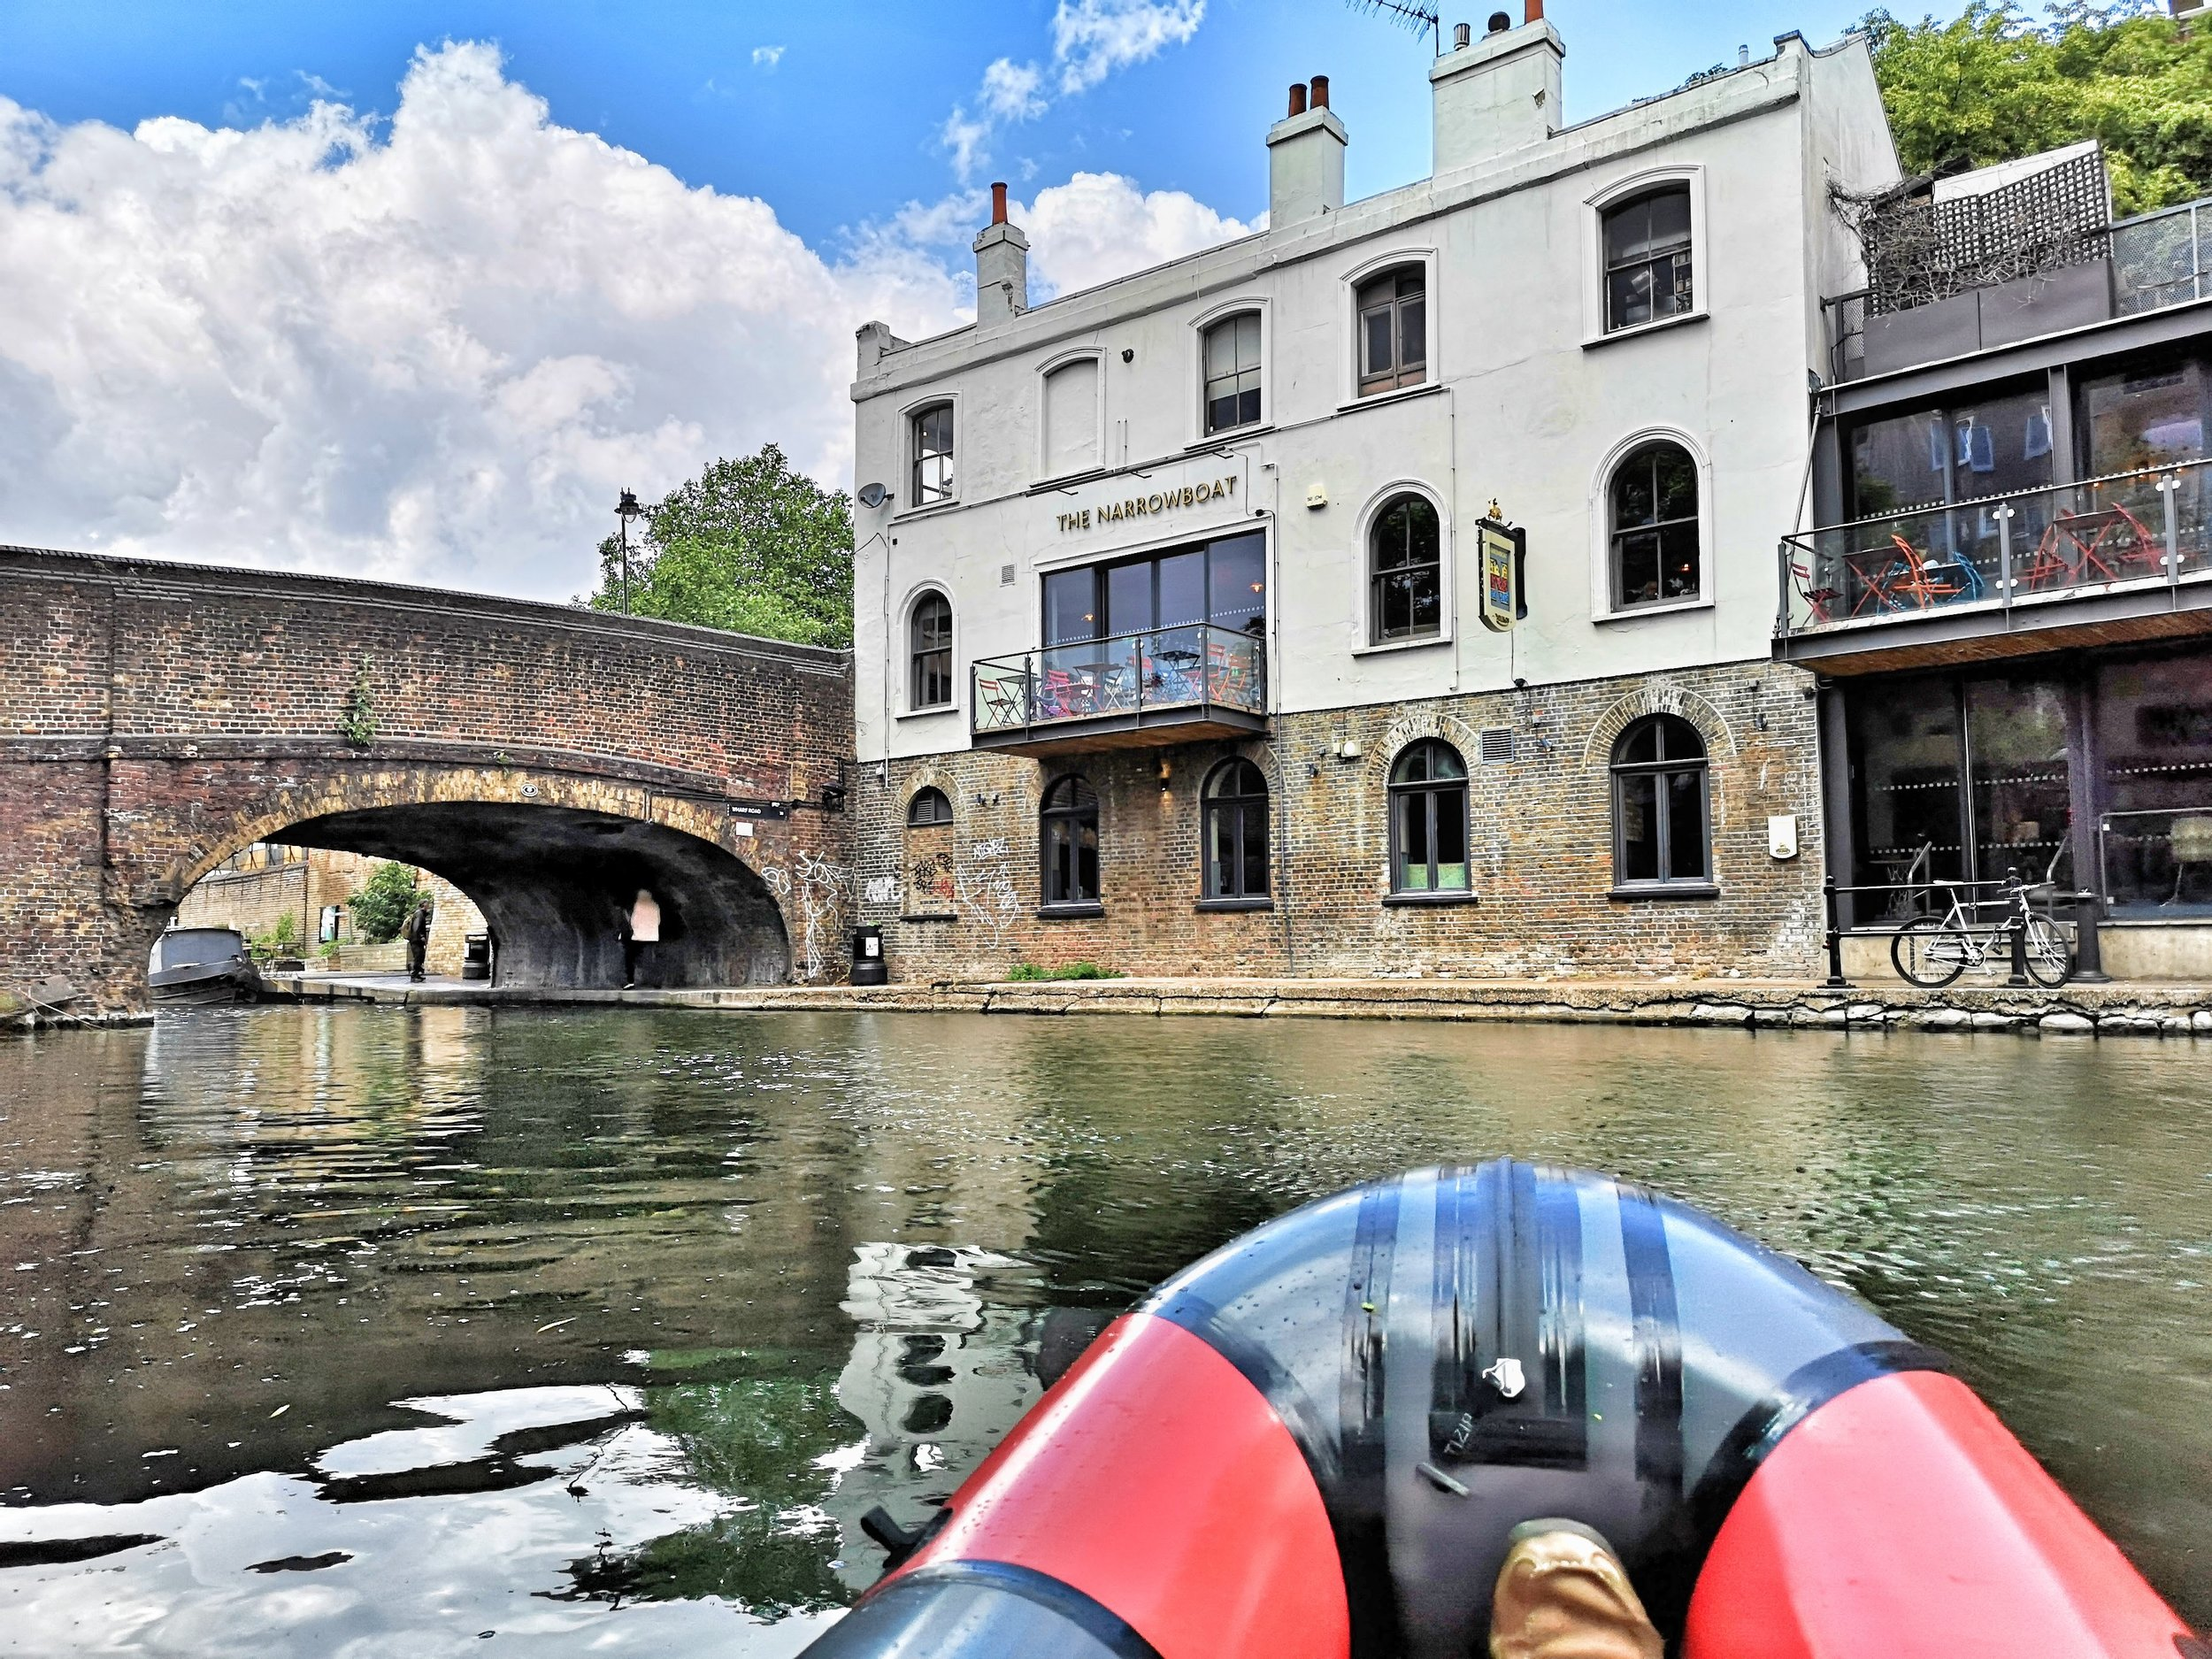 The Narrow Boat  is a beautiful canal side pub and the perfect place to finish your paddle (book a table if you want to eat because it's small and popular).